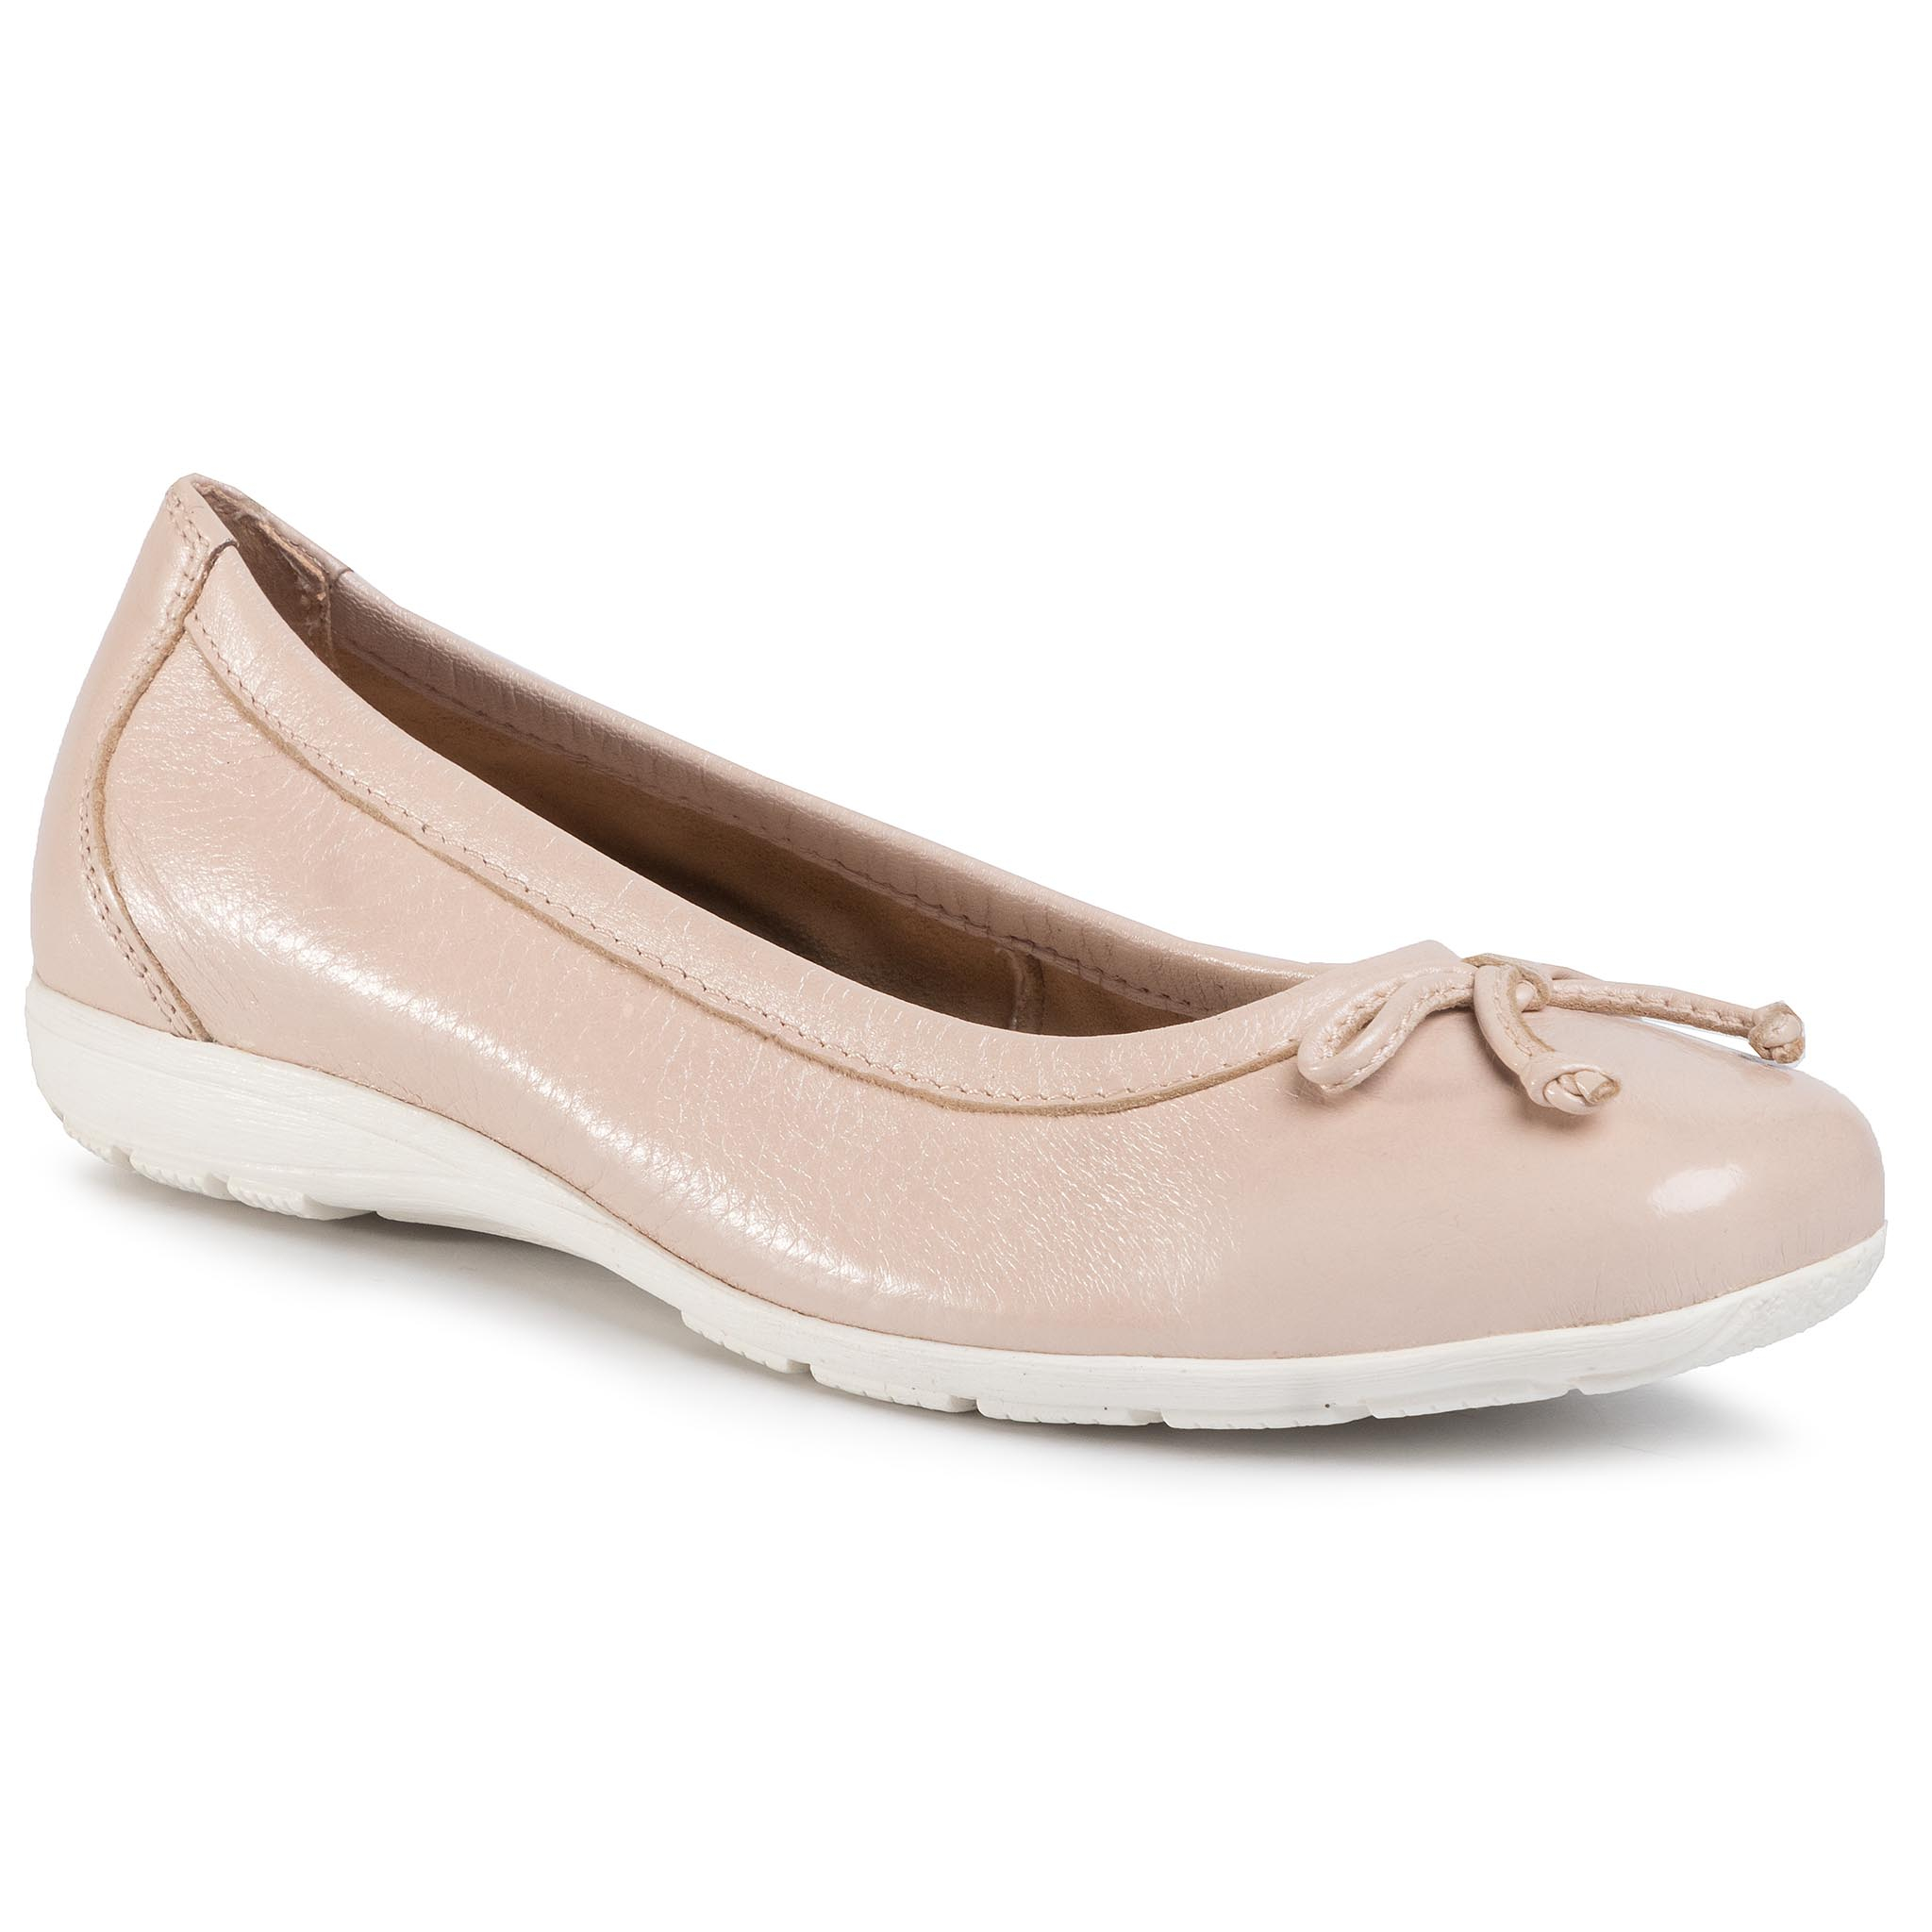 Balerini Caprice - 9-22106-24 Rose Deer Perl 561 imagine epantofi.ro